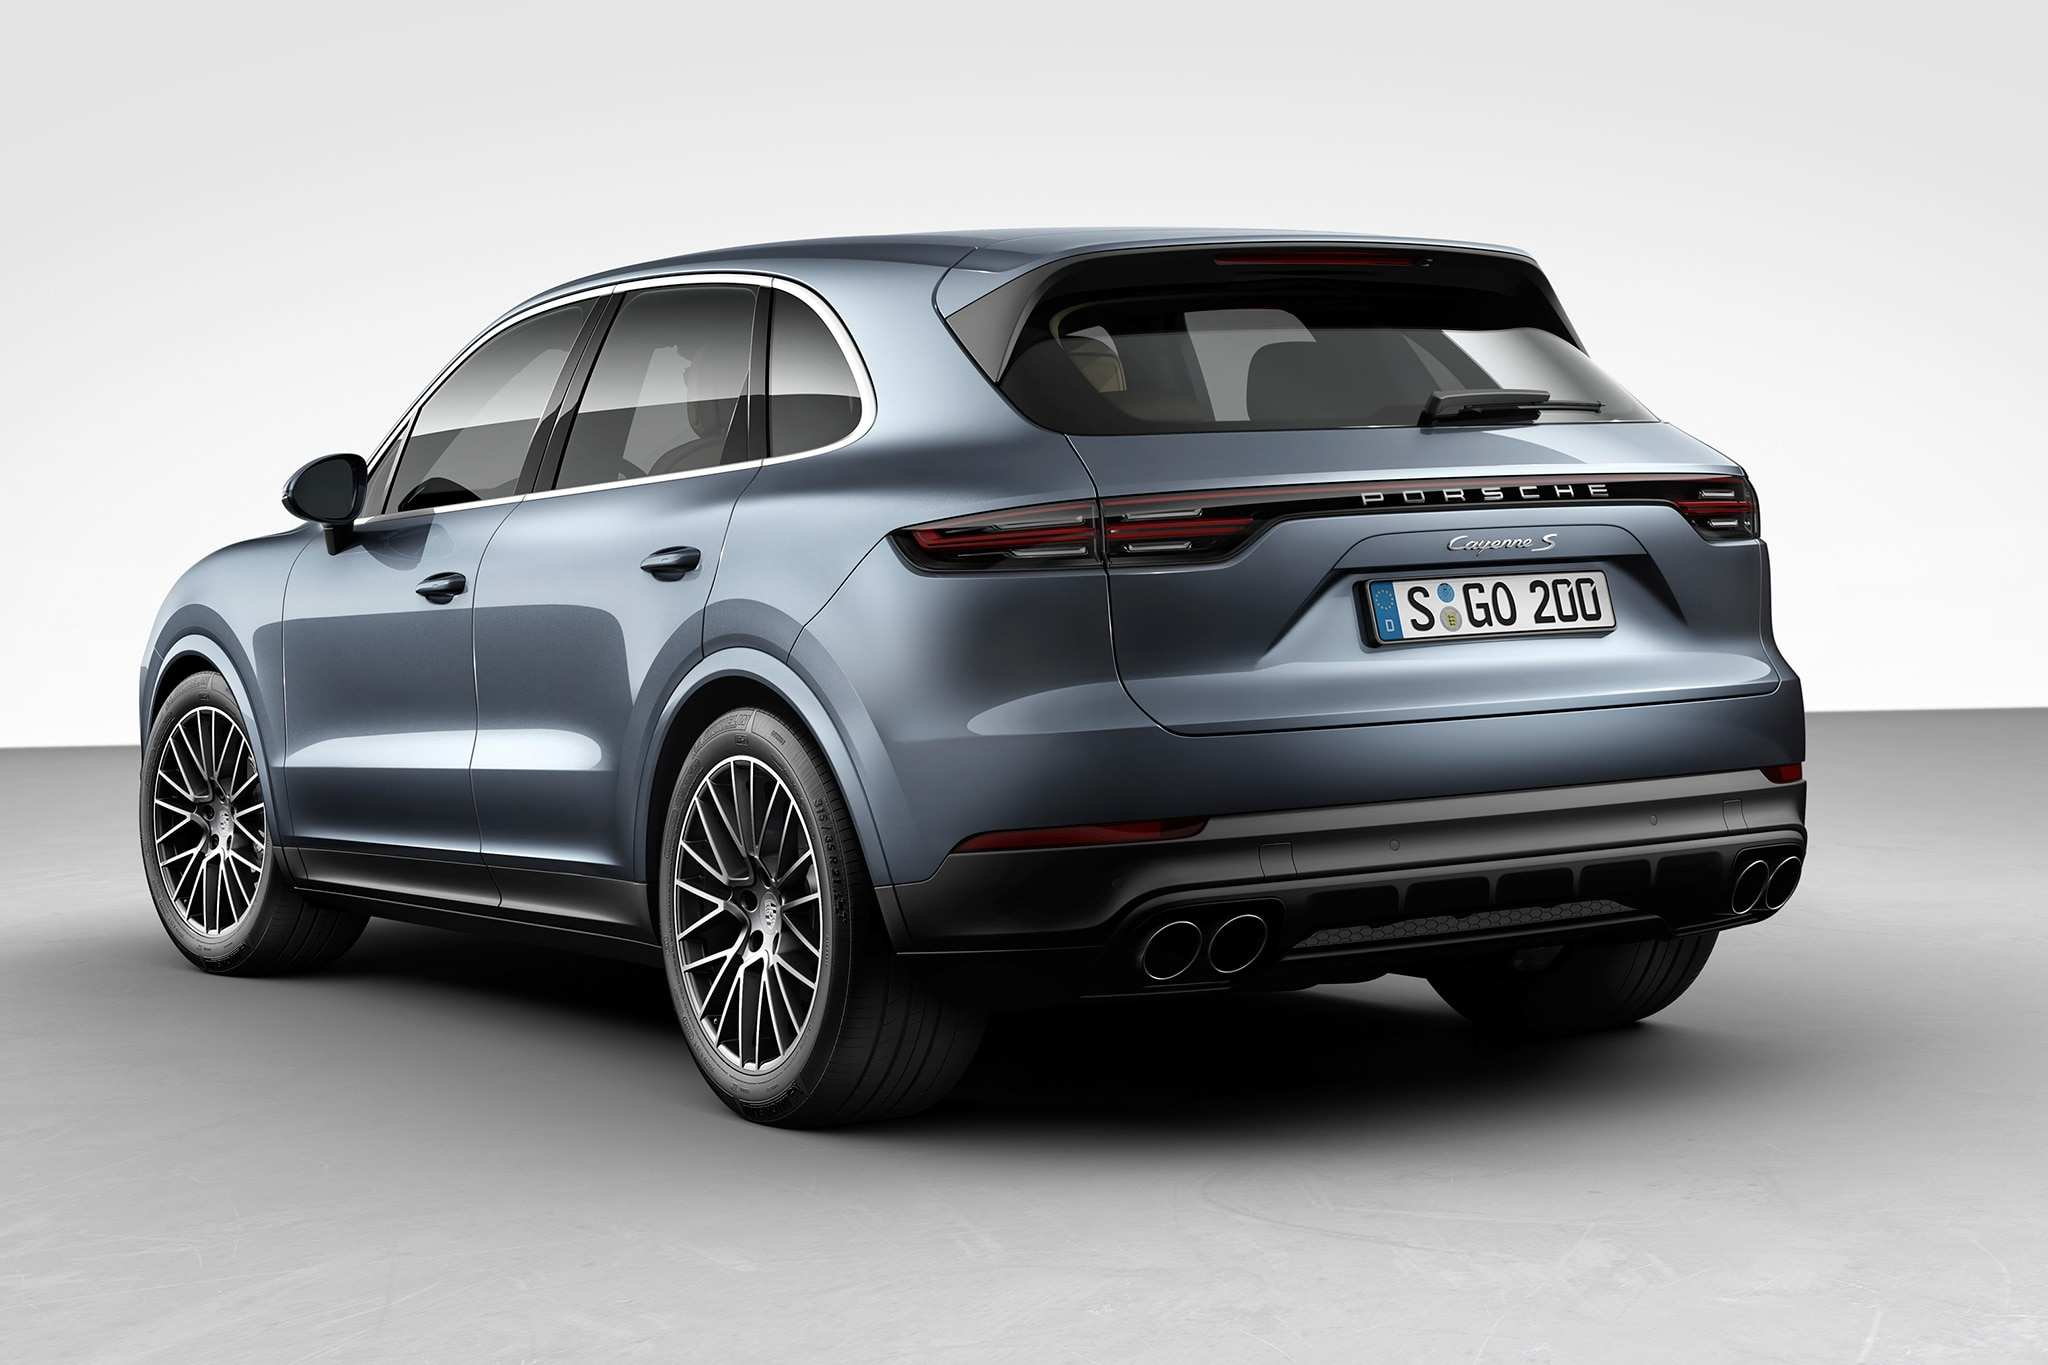 44 New 2018 Vs 2019 Porsche Cayenne Release Date by 2018 Vs 2019 Porsche Cayenne